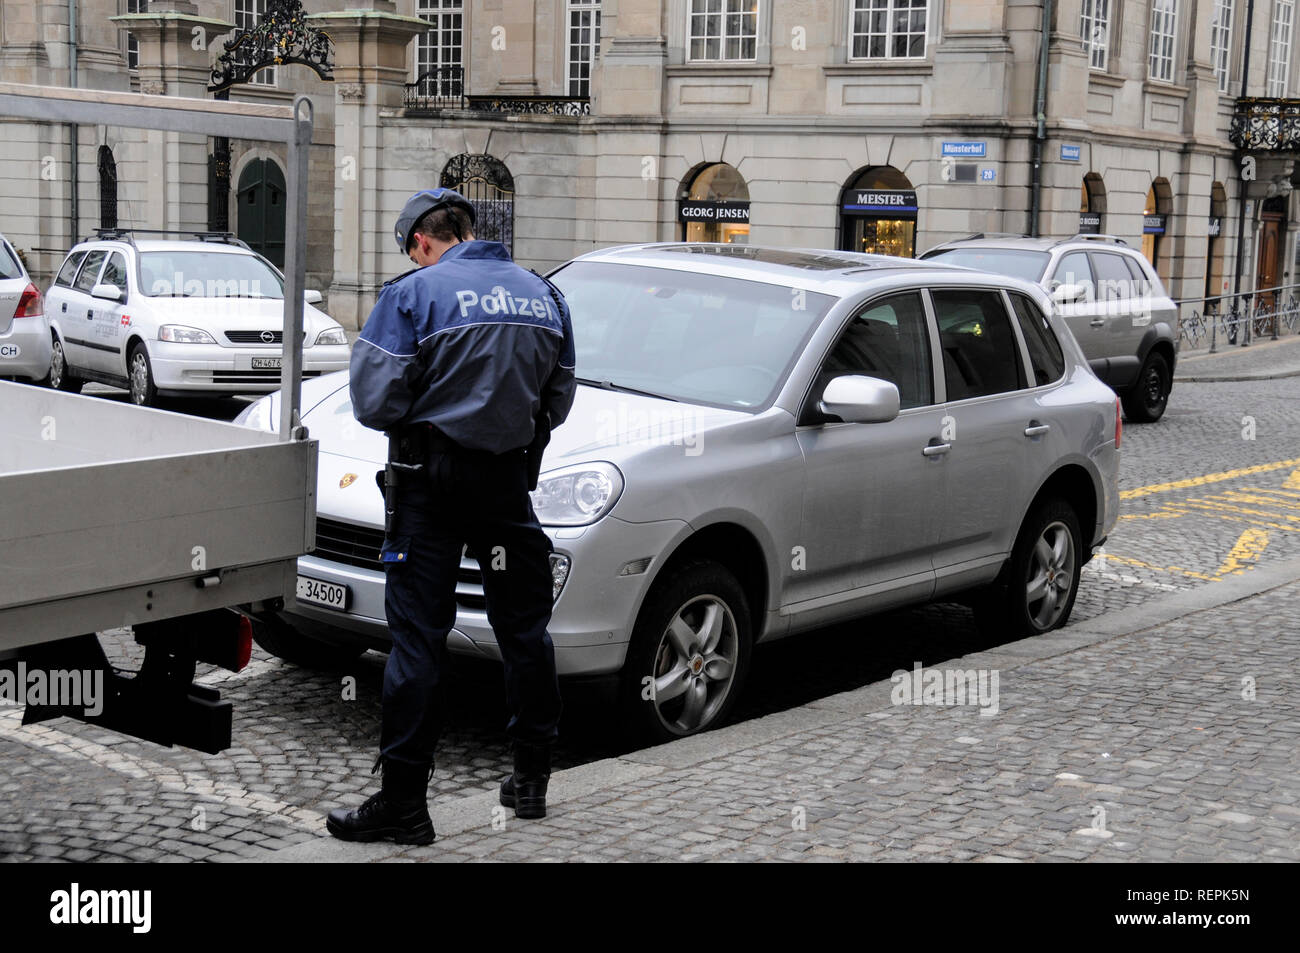 A police officer books a parked car in Zurich, Switzerland - Stock Image